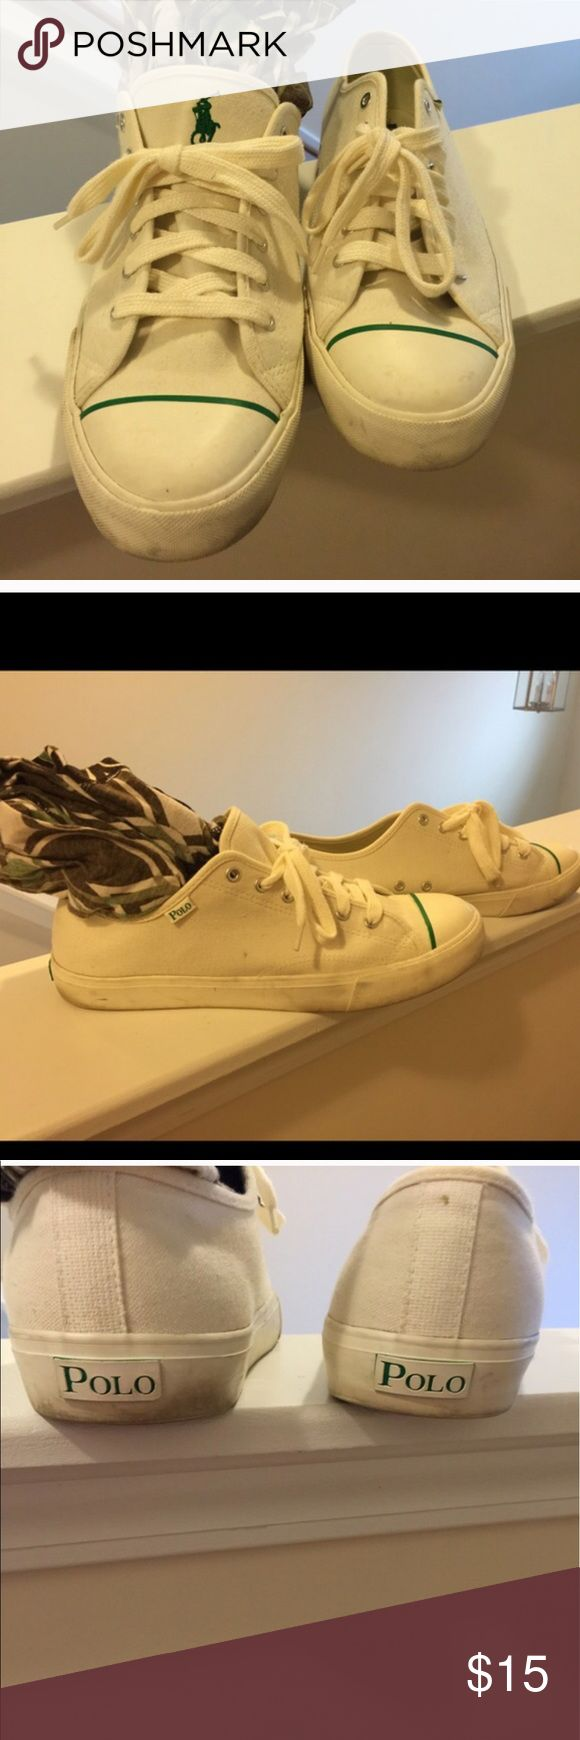 Still for sale Males shoes They are green and off white. Need some cleaning but still have plenty of life in them. Polo by Ralph Lauren Shoes Sneakers